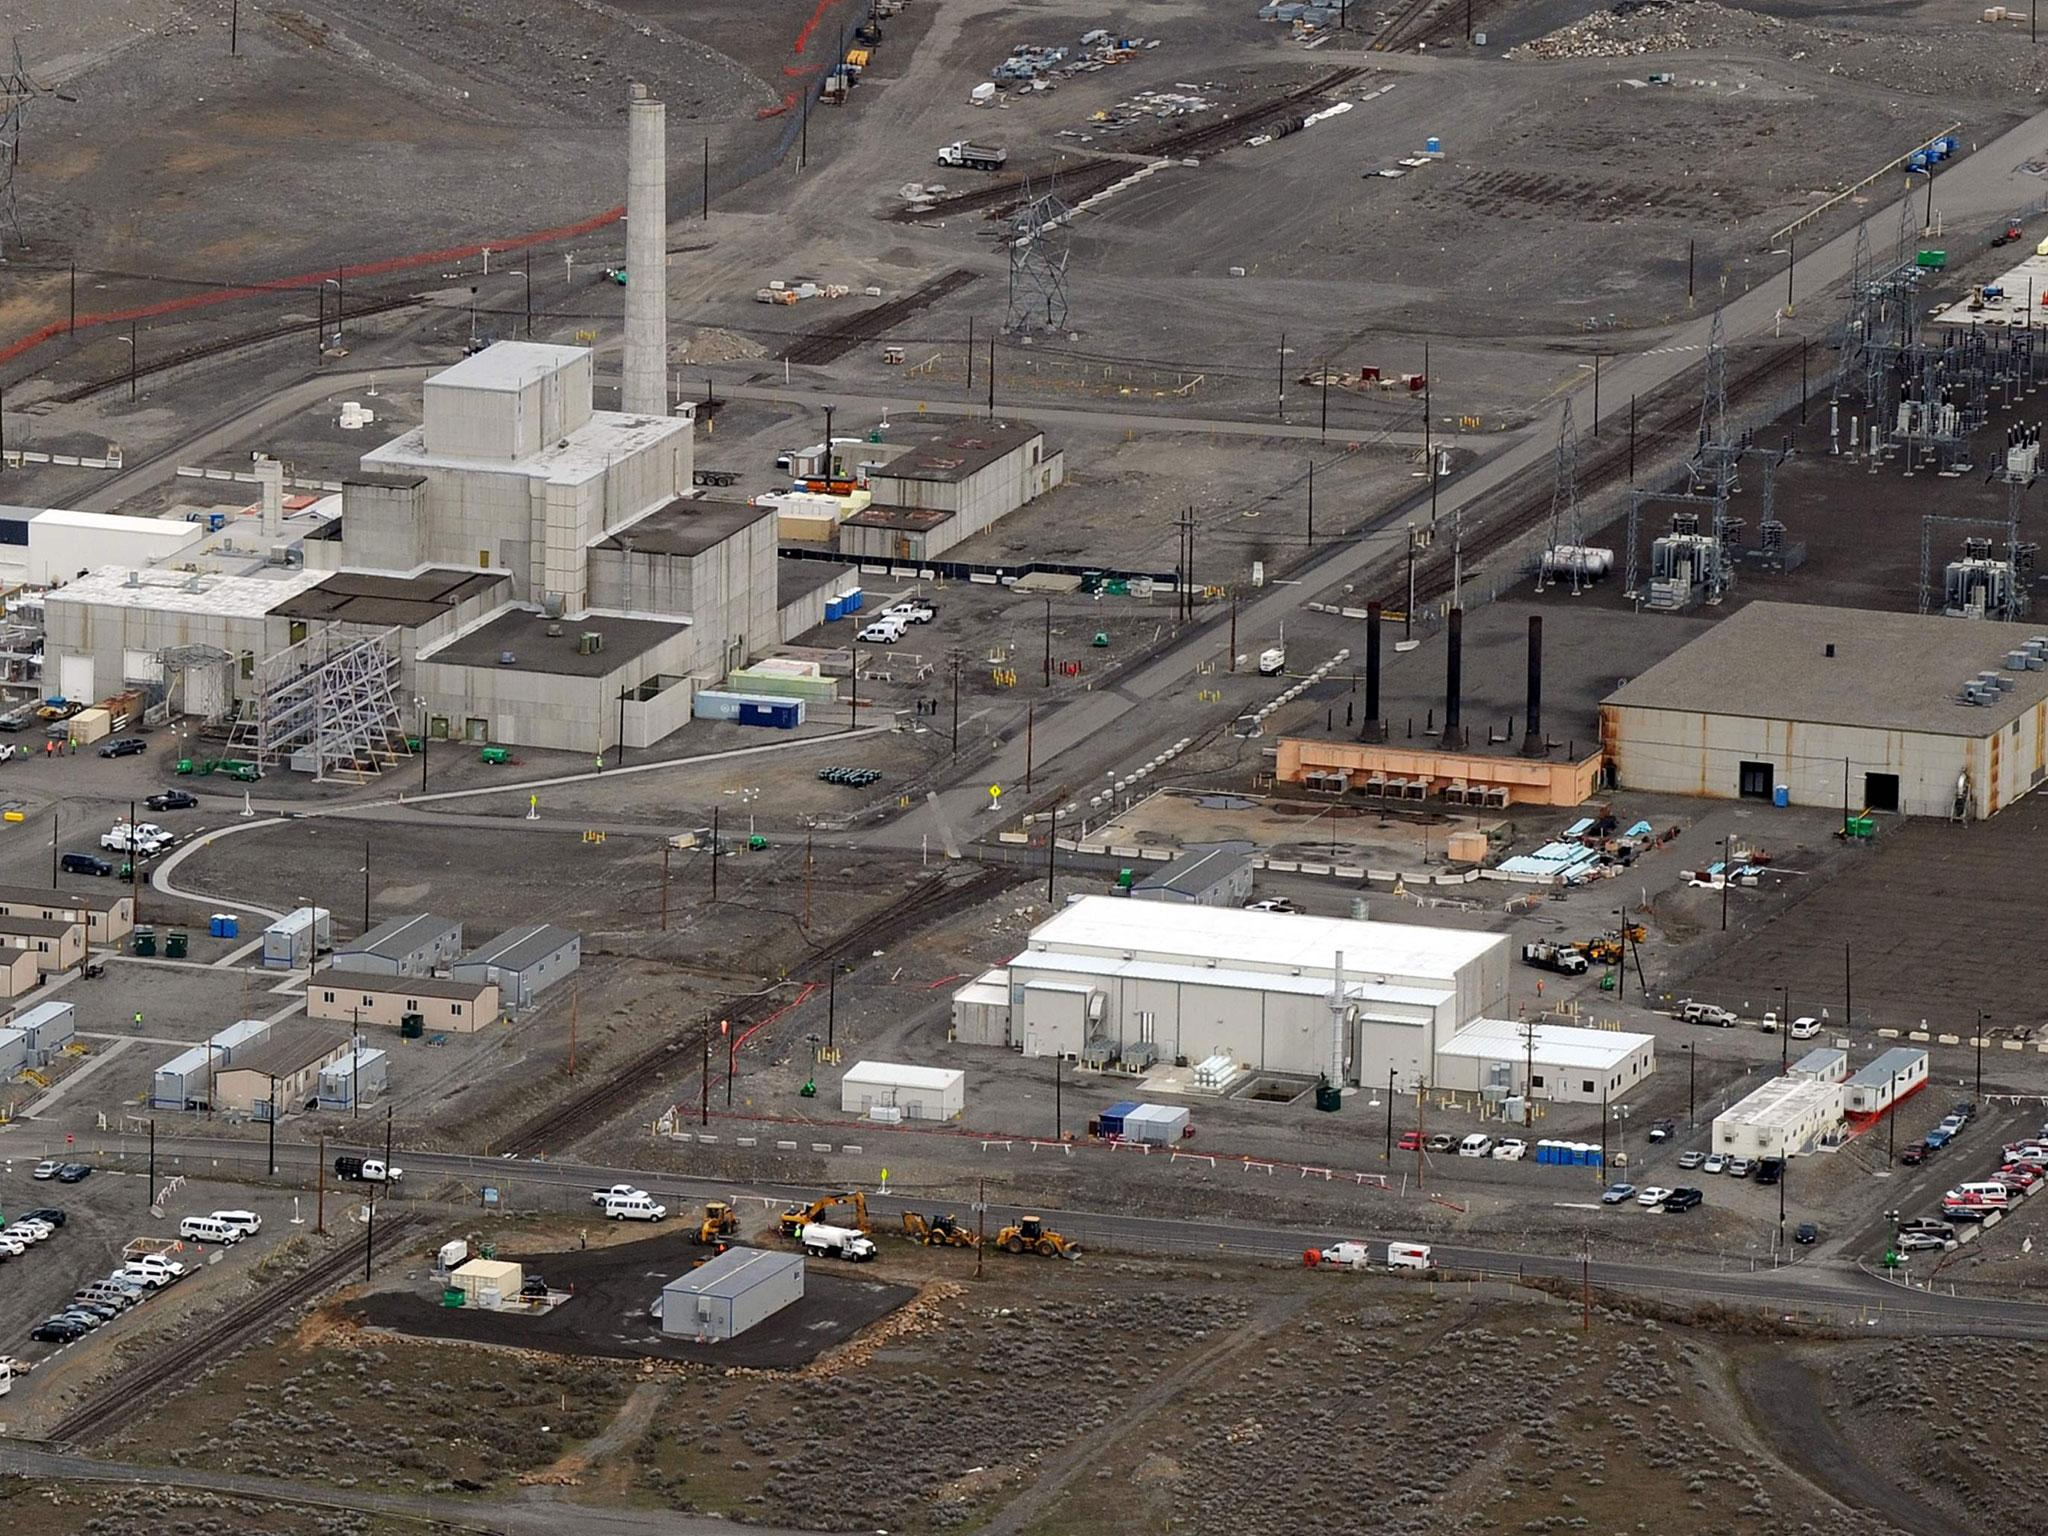 Hanford nuclear emergency: Workers take cover at 'most toxic place in America' after tunnel collapse